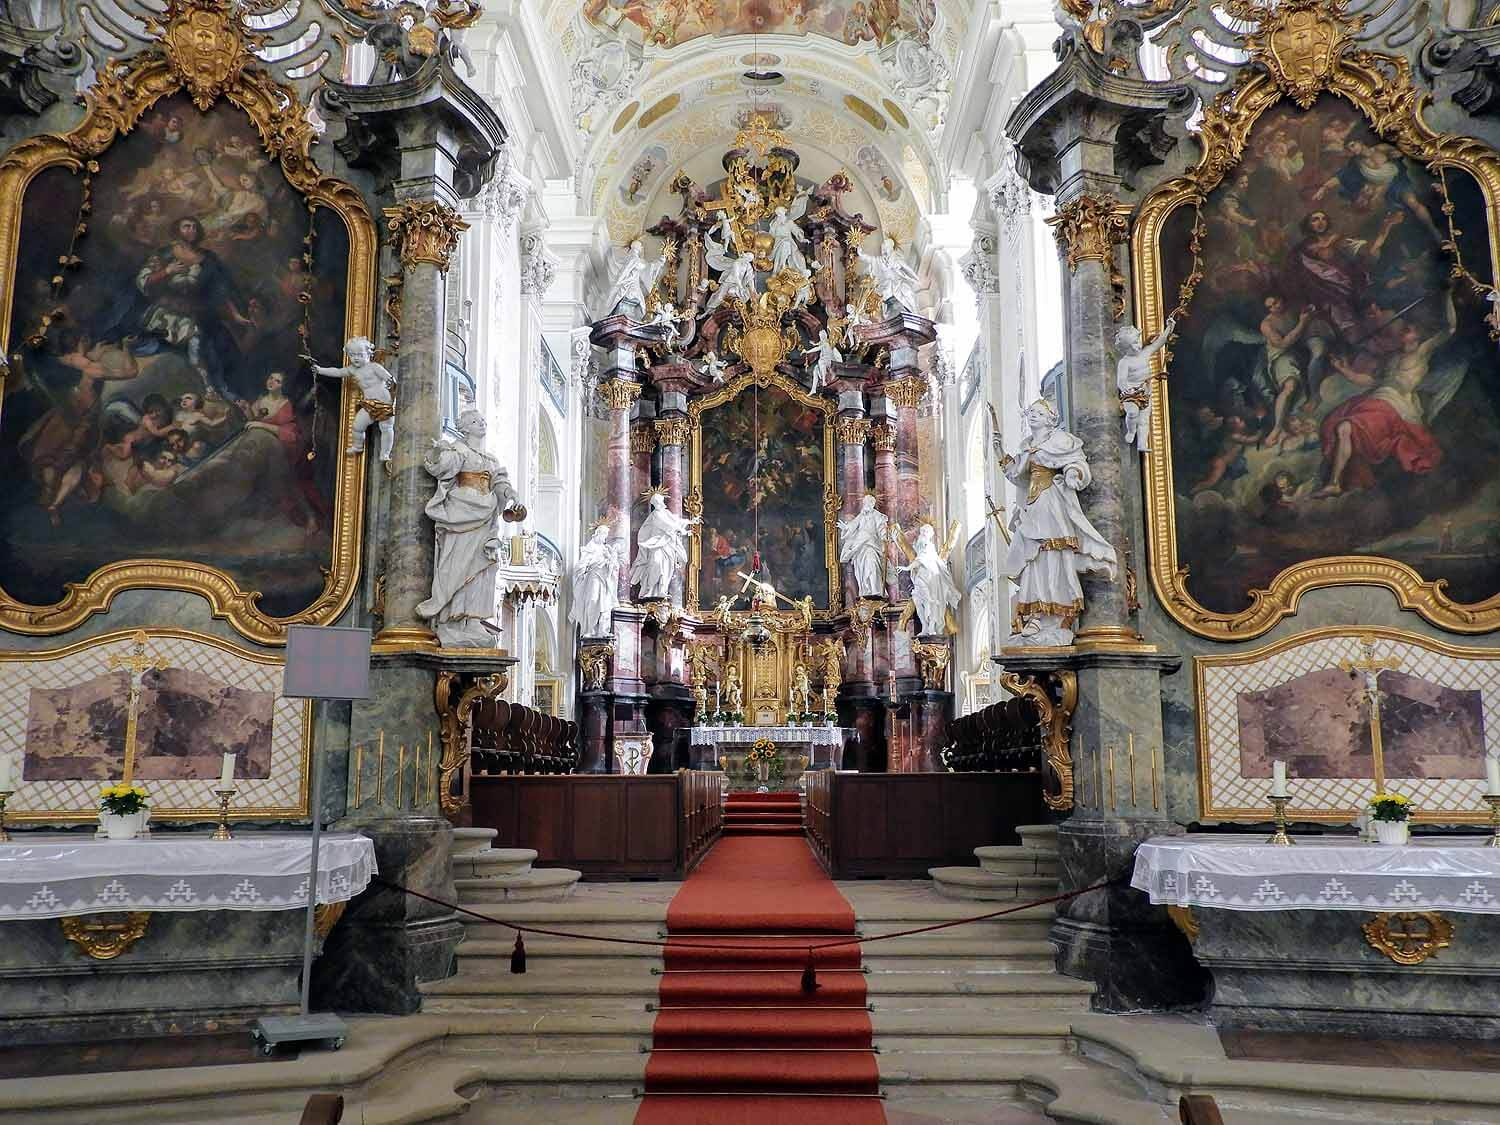 germany-kloster-schontal-cathedral-alter.jpg